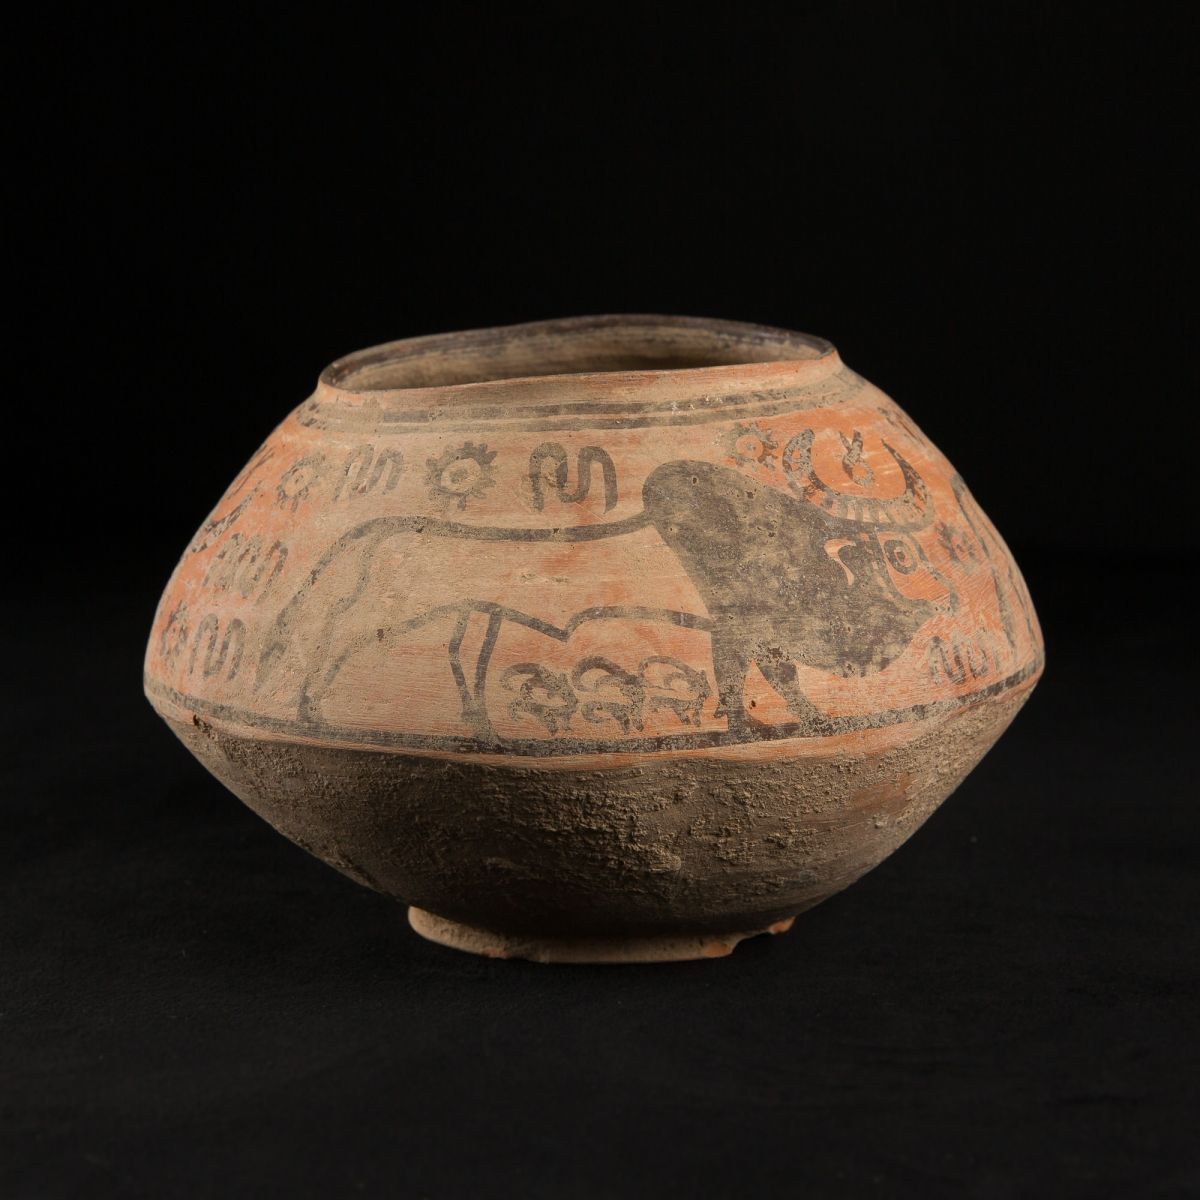 Photo of neolitic-pottery-indus-valley-mehrgarh-thermoluminest-test-musuem-galerie-golconda-expert-ancient-civilisations